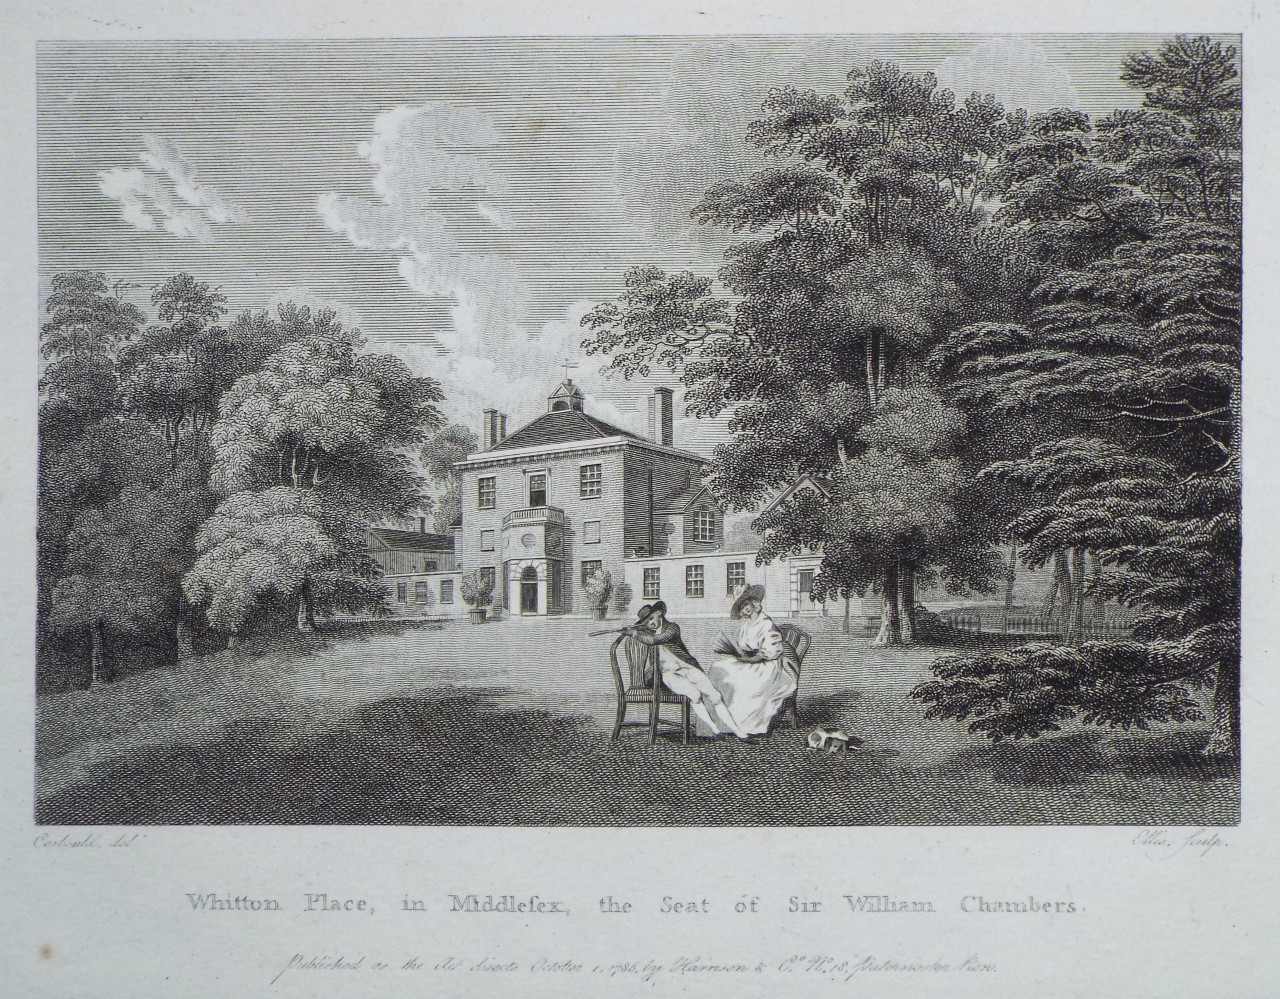 Print - Whitton Place, in Middlesex, the Seat of Sir William Chambers. -